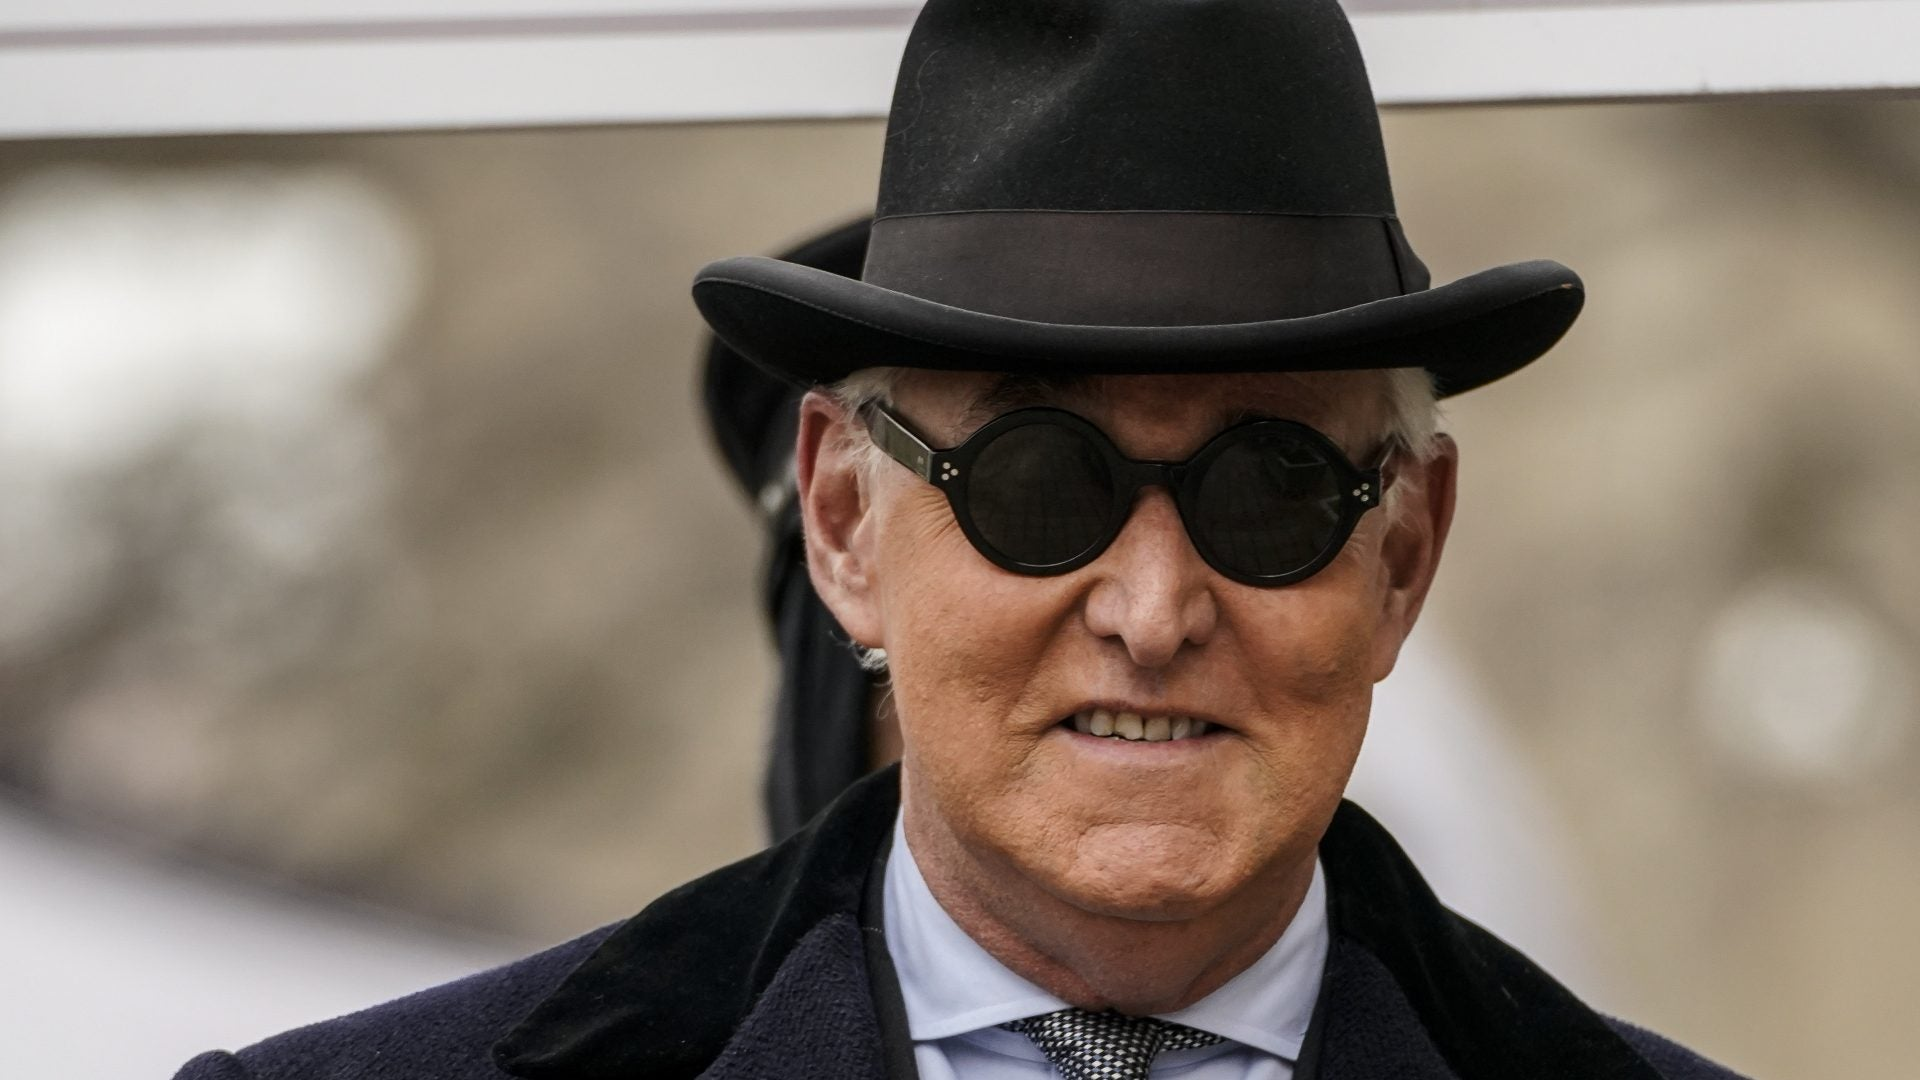 Former Trump Campaign Manager Roger Stone Sentenced To 40 Months In Prison